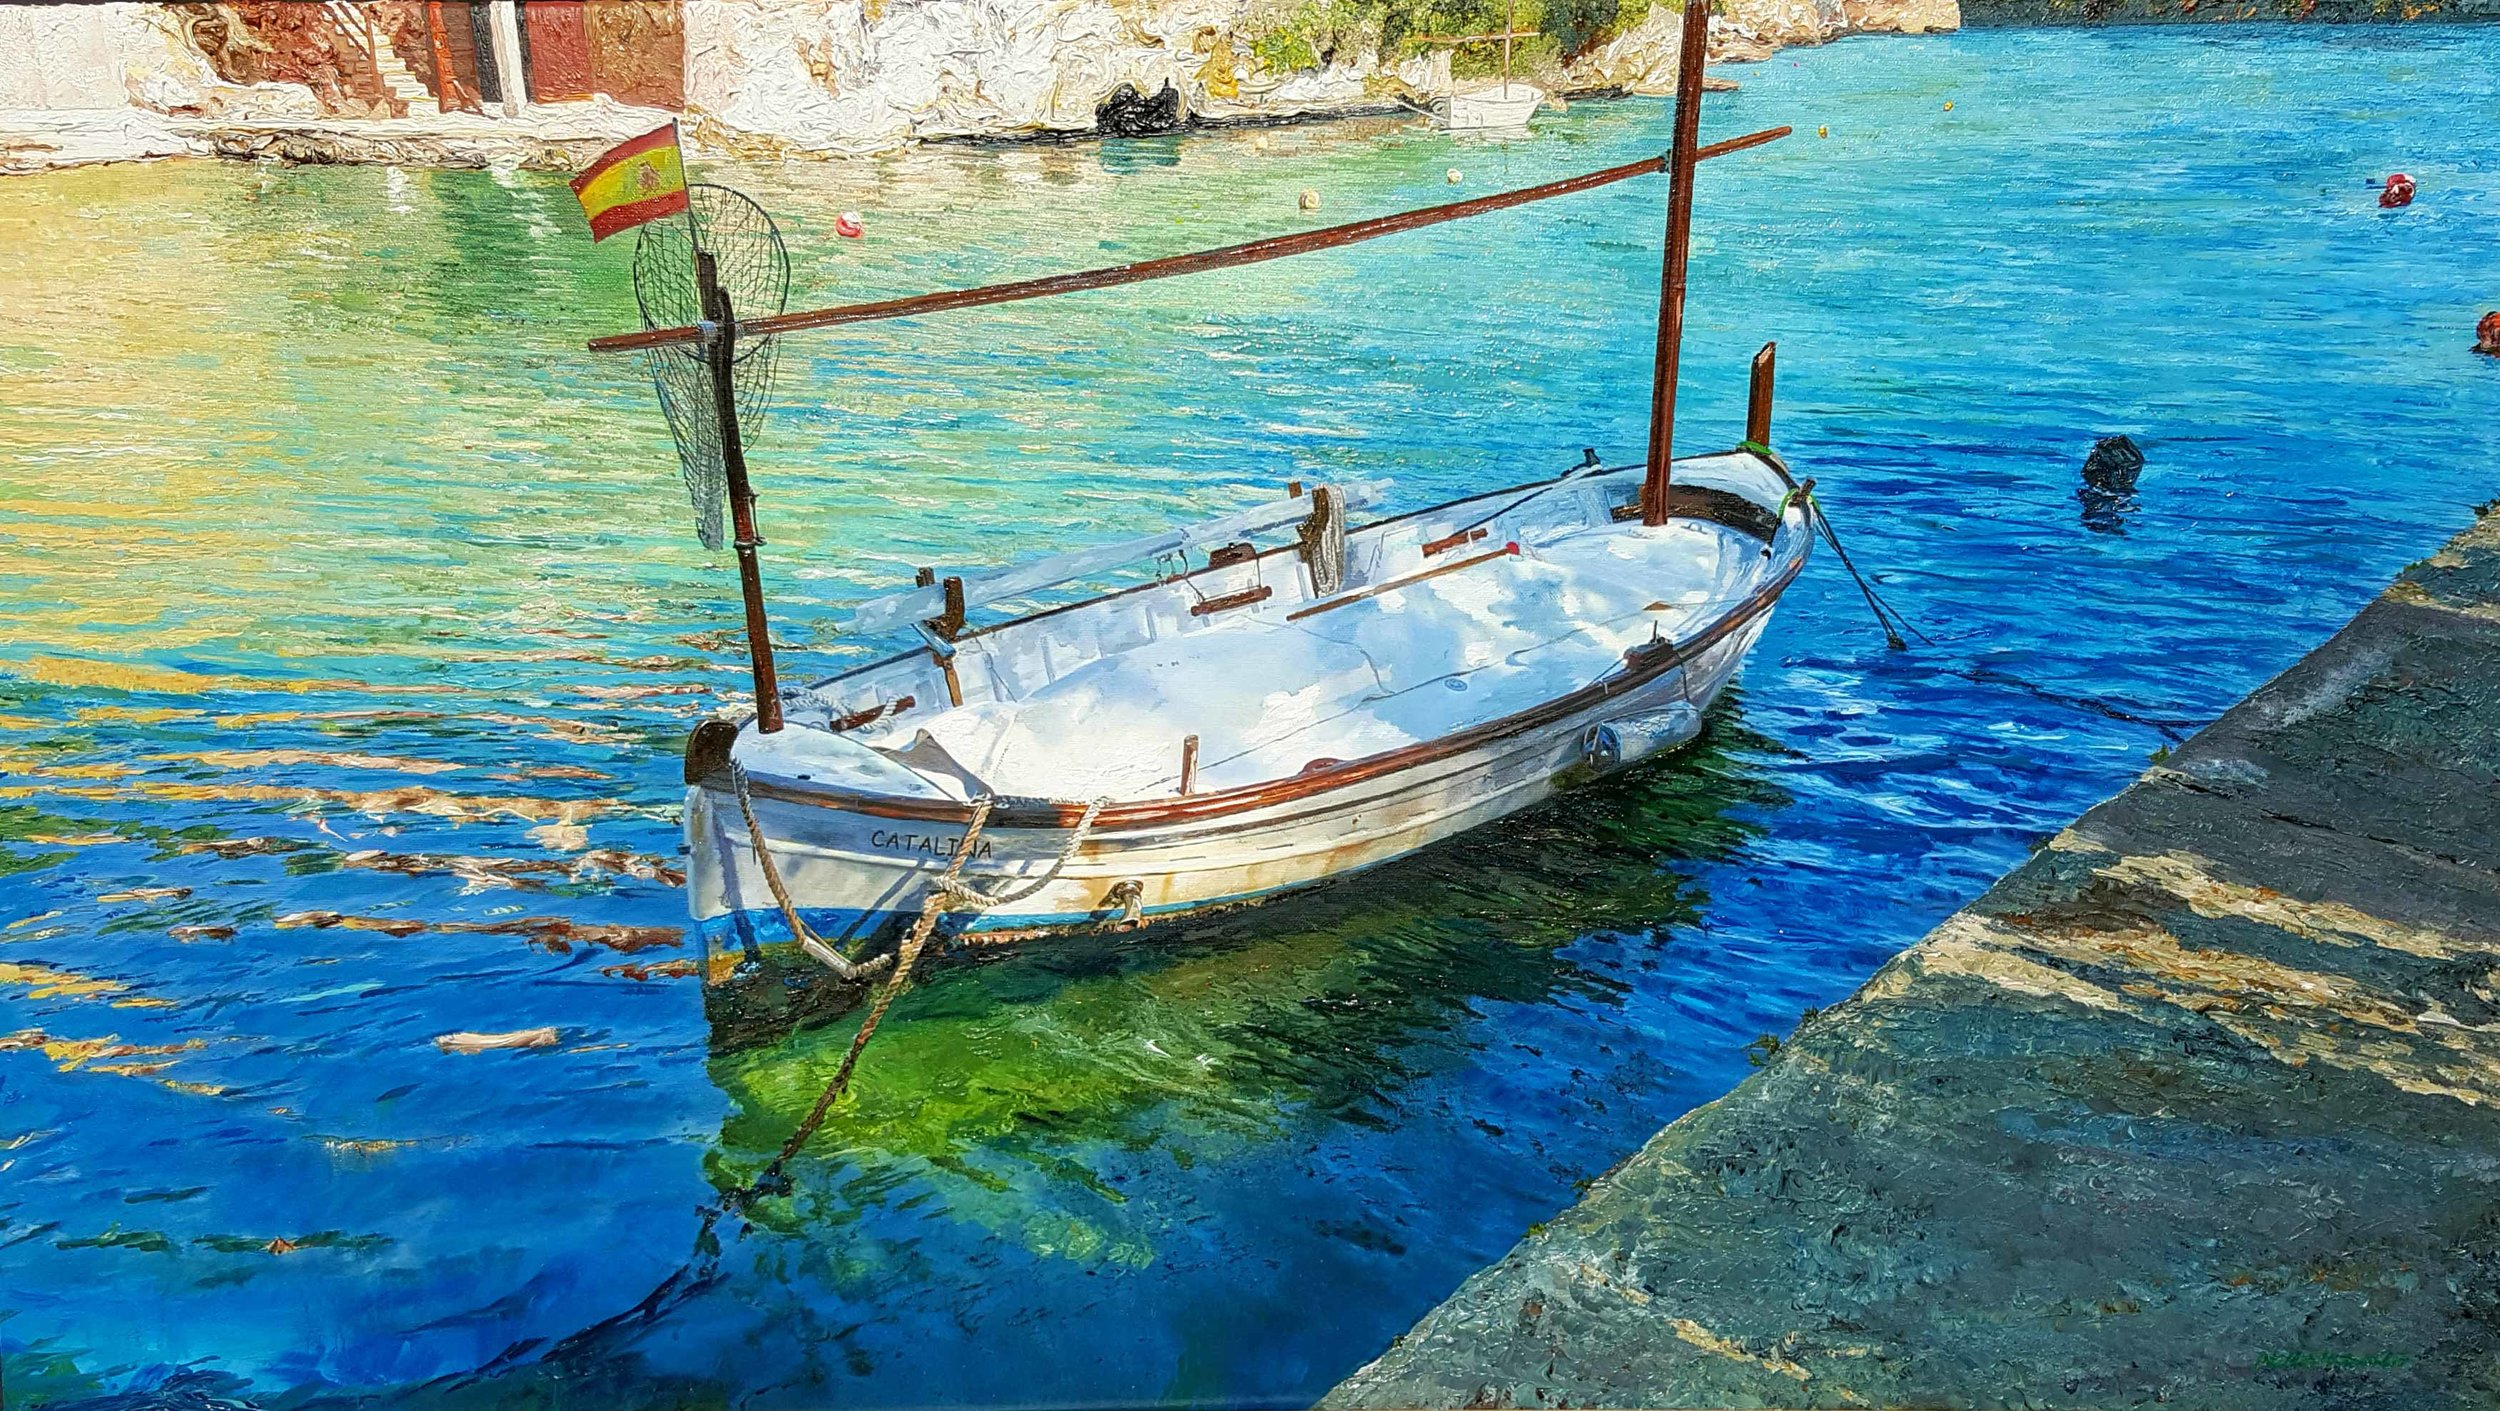 ' Llaut in Cala Figuera, Mallorca ', 2017, Oil on Canvas, 51 x 91cm.